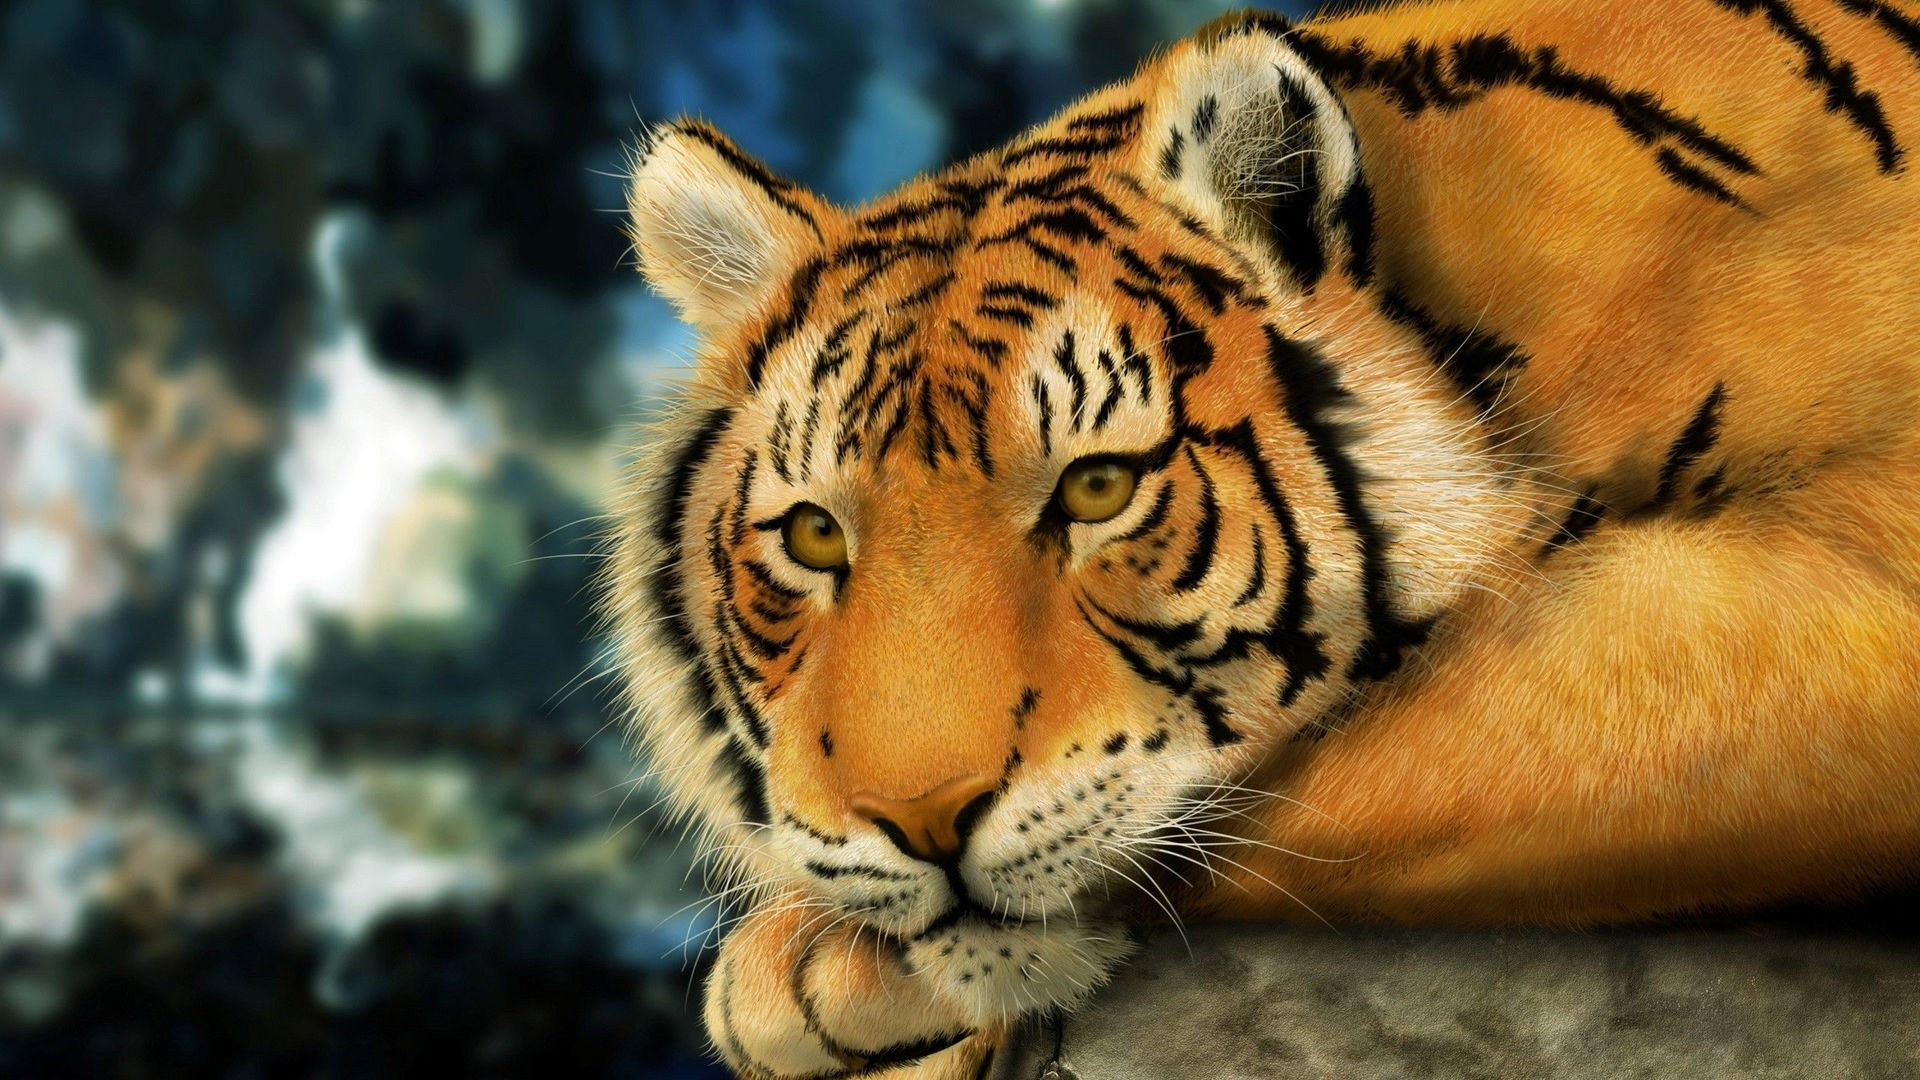 tiger wallpapers high quality | download free